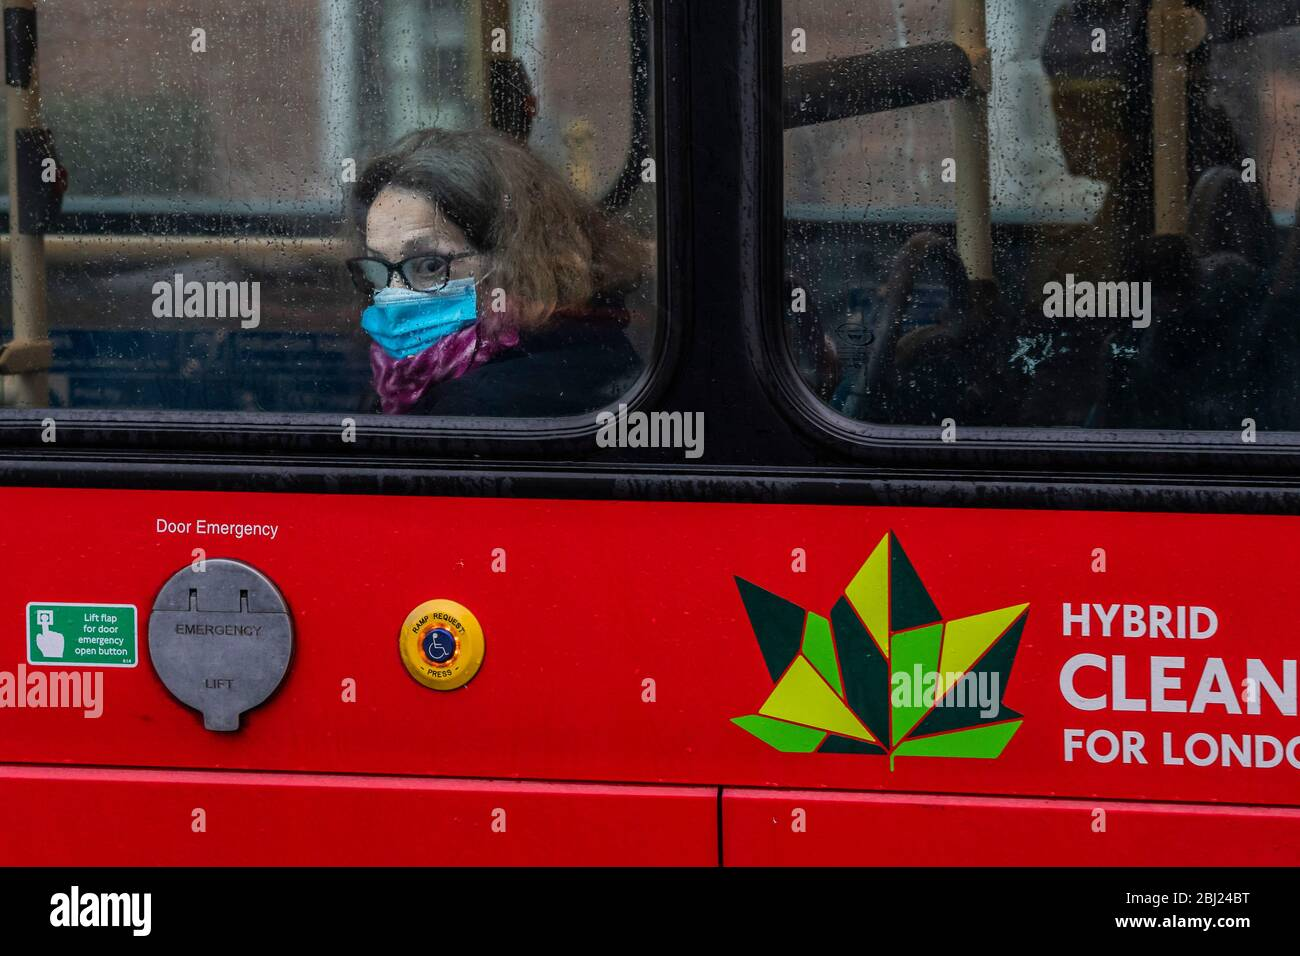 London, UK. 28th Apr, 2020. Bus travel is free and provides a brief respite from the weather - The first heavy rain doesn't stop, but greatly reduces, outdoor activity around Clapham Common. The 'lockdown' continues for the Coronavirus (Covid 19) outbreak in London. Credit: Guy Bell/Alamy Live News Stock Photo